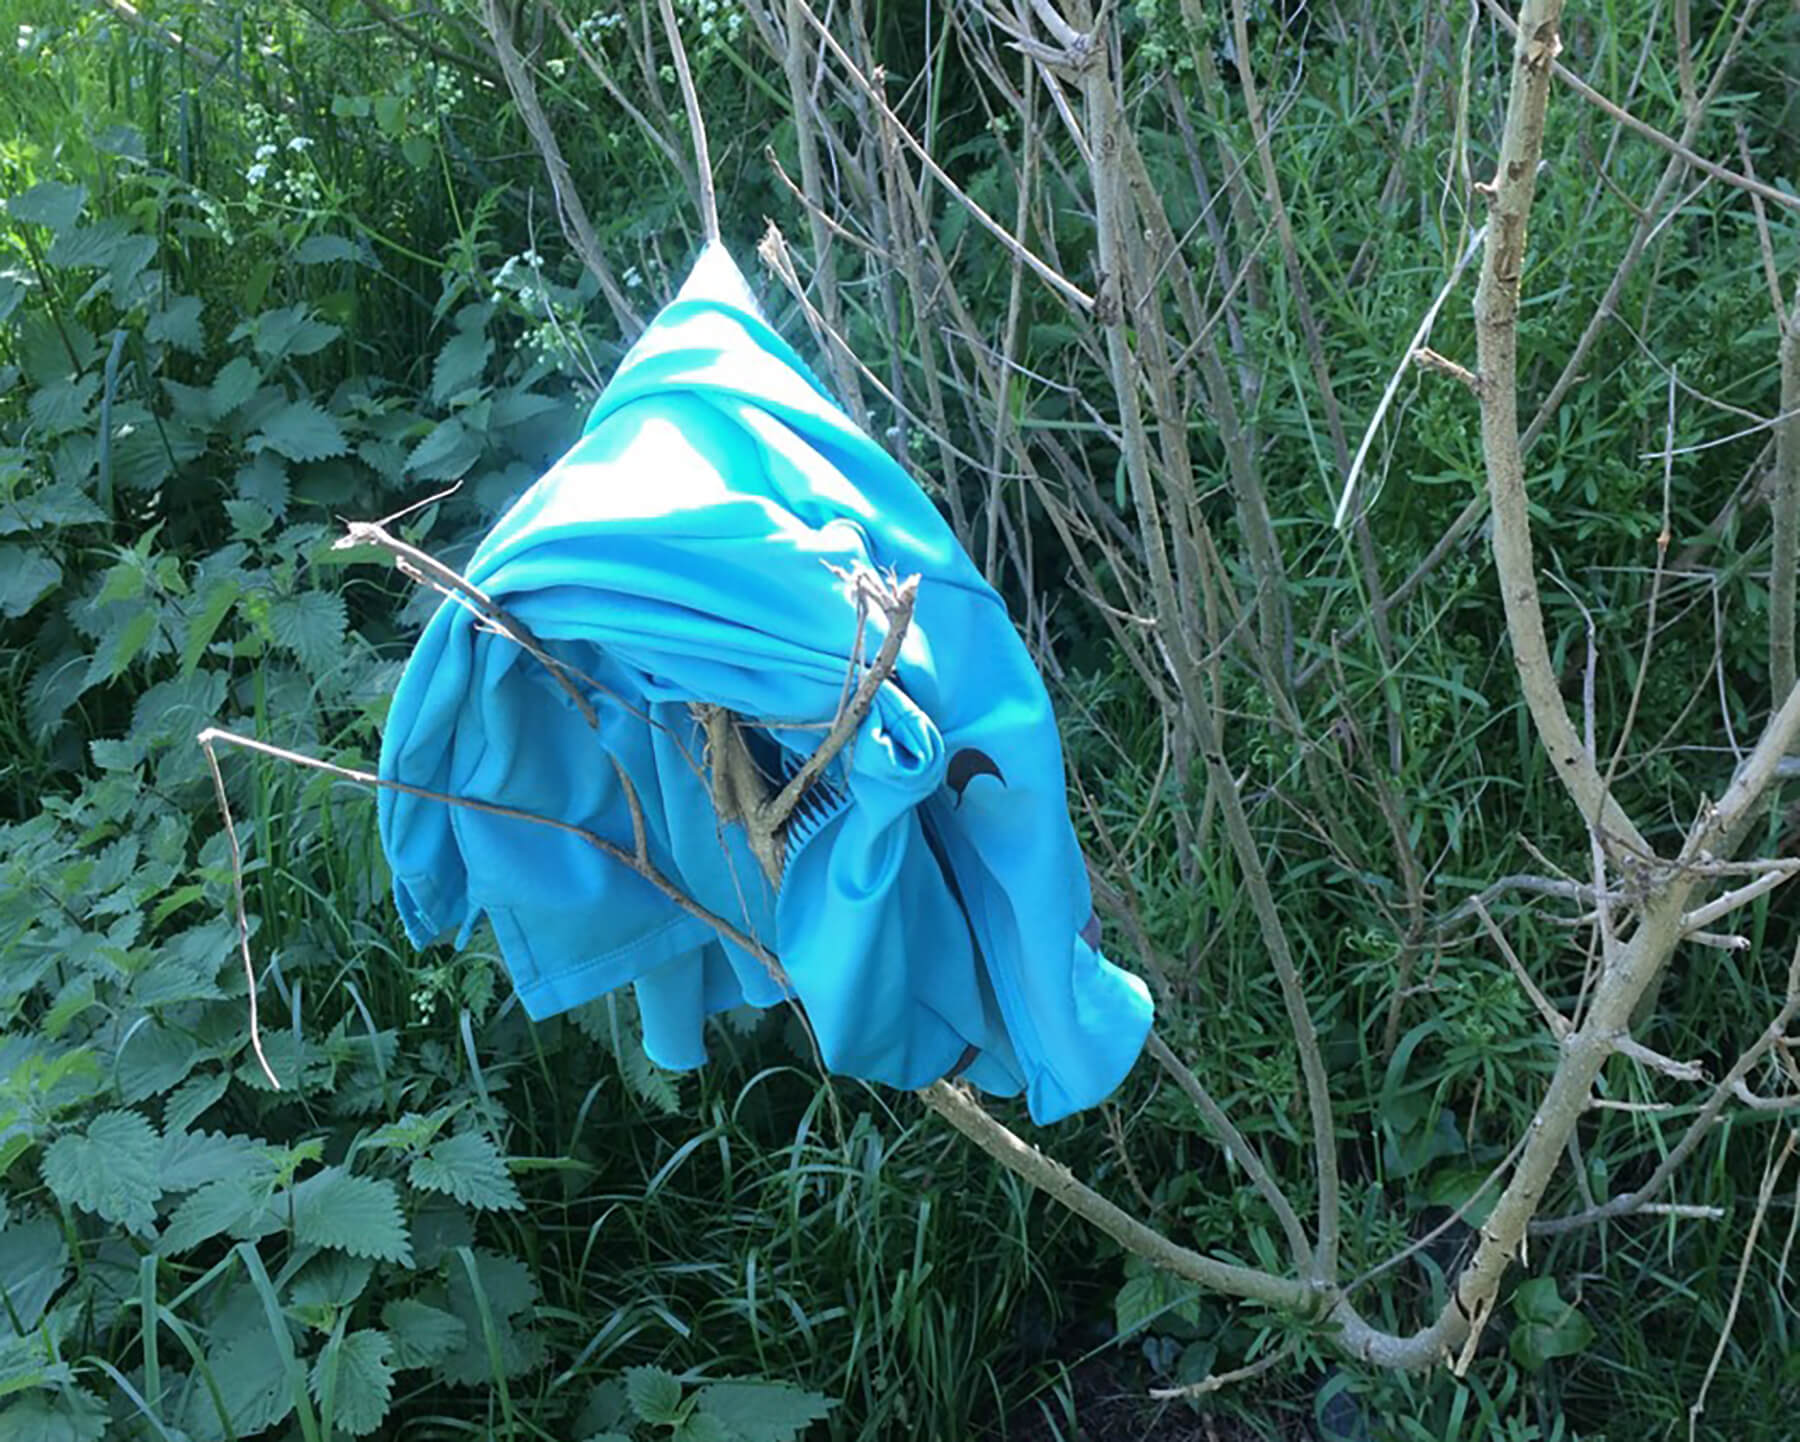 Wandsworth Common Lost Property, Clothes